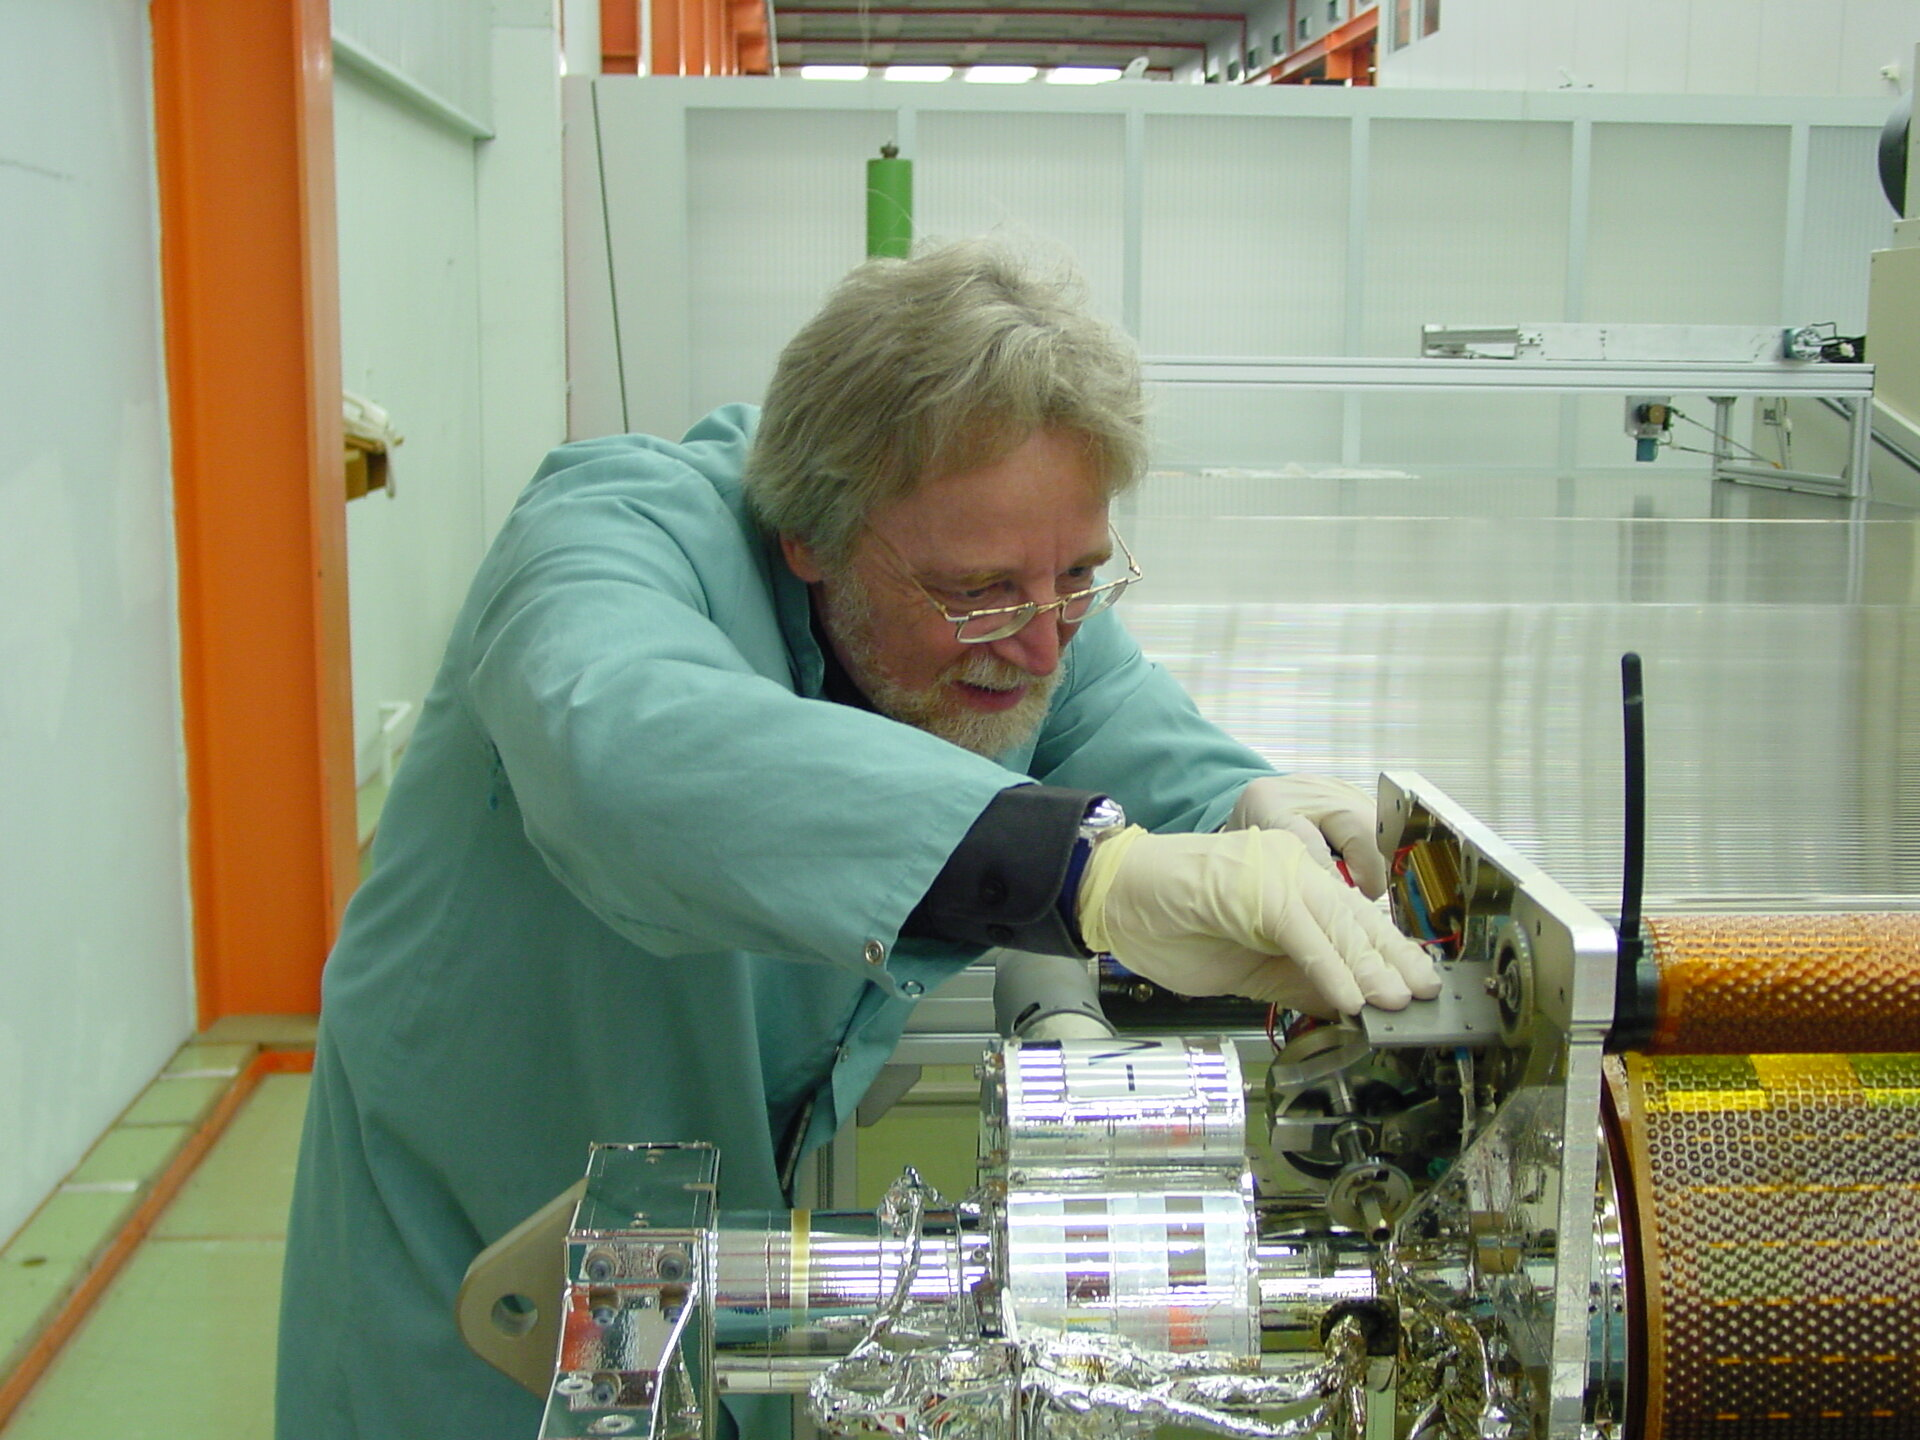 Lothar Gerlach, Head of ESA's Solar Generator section, examines solar cells